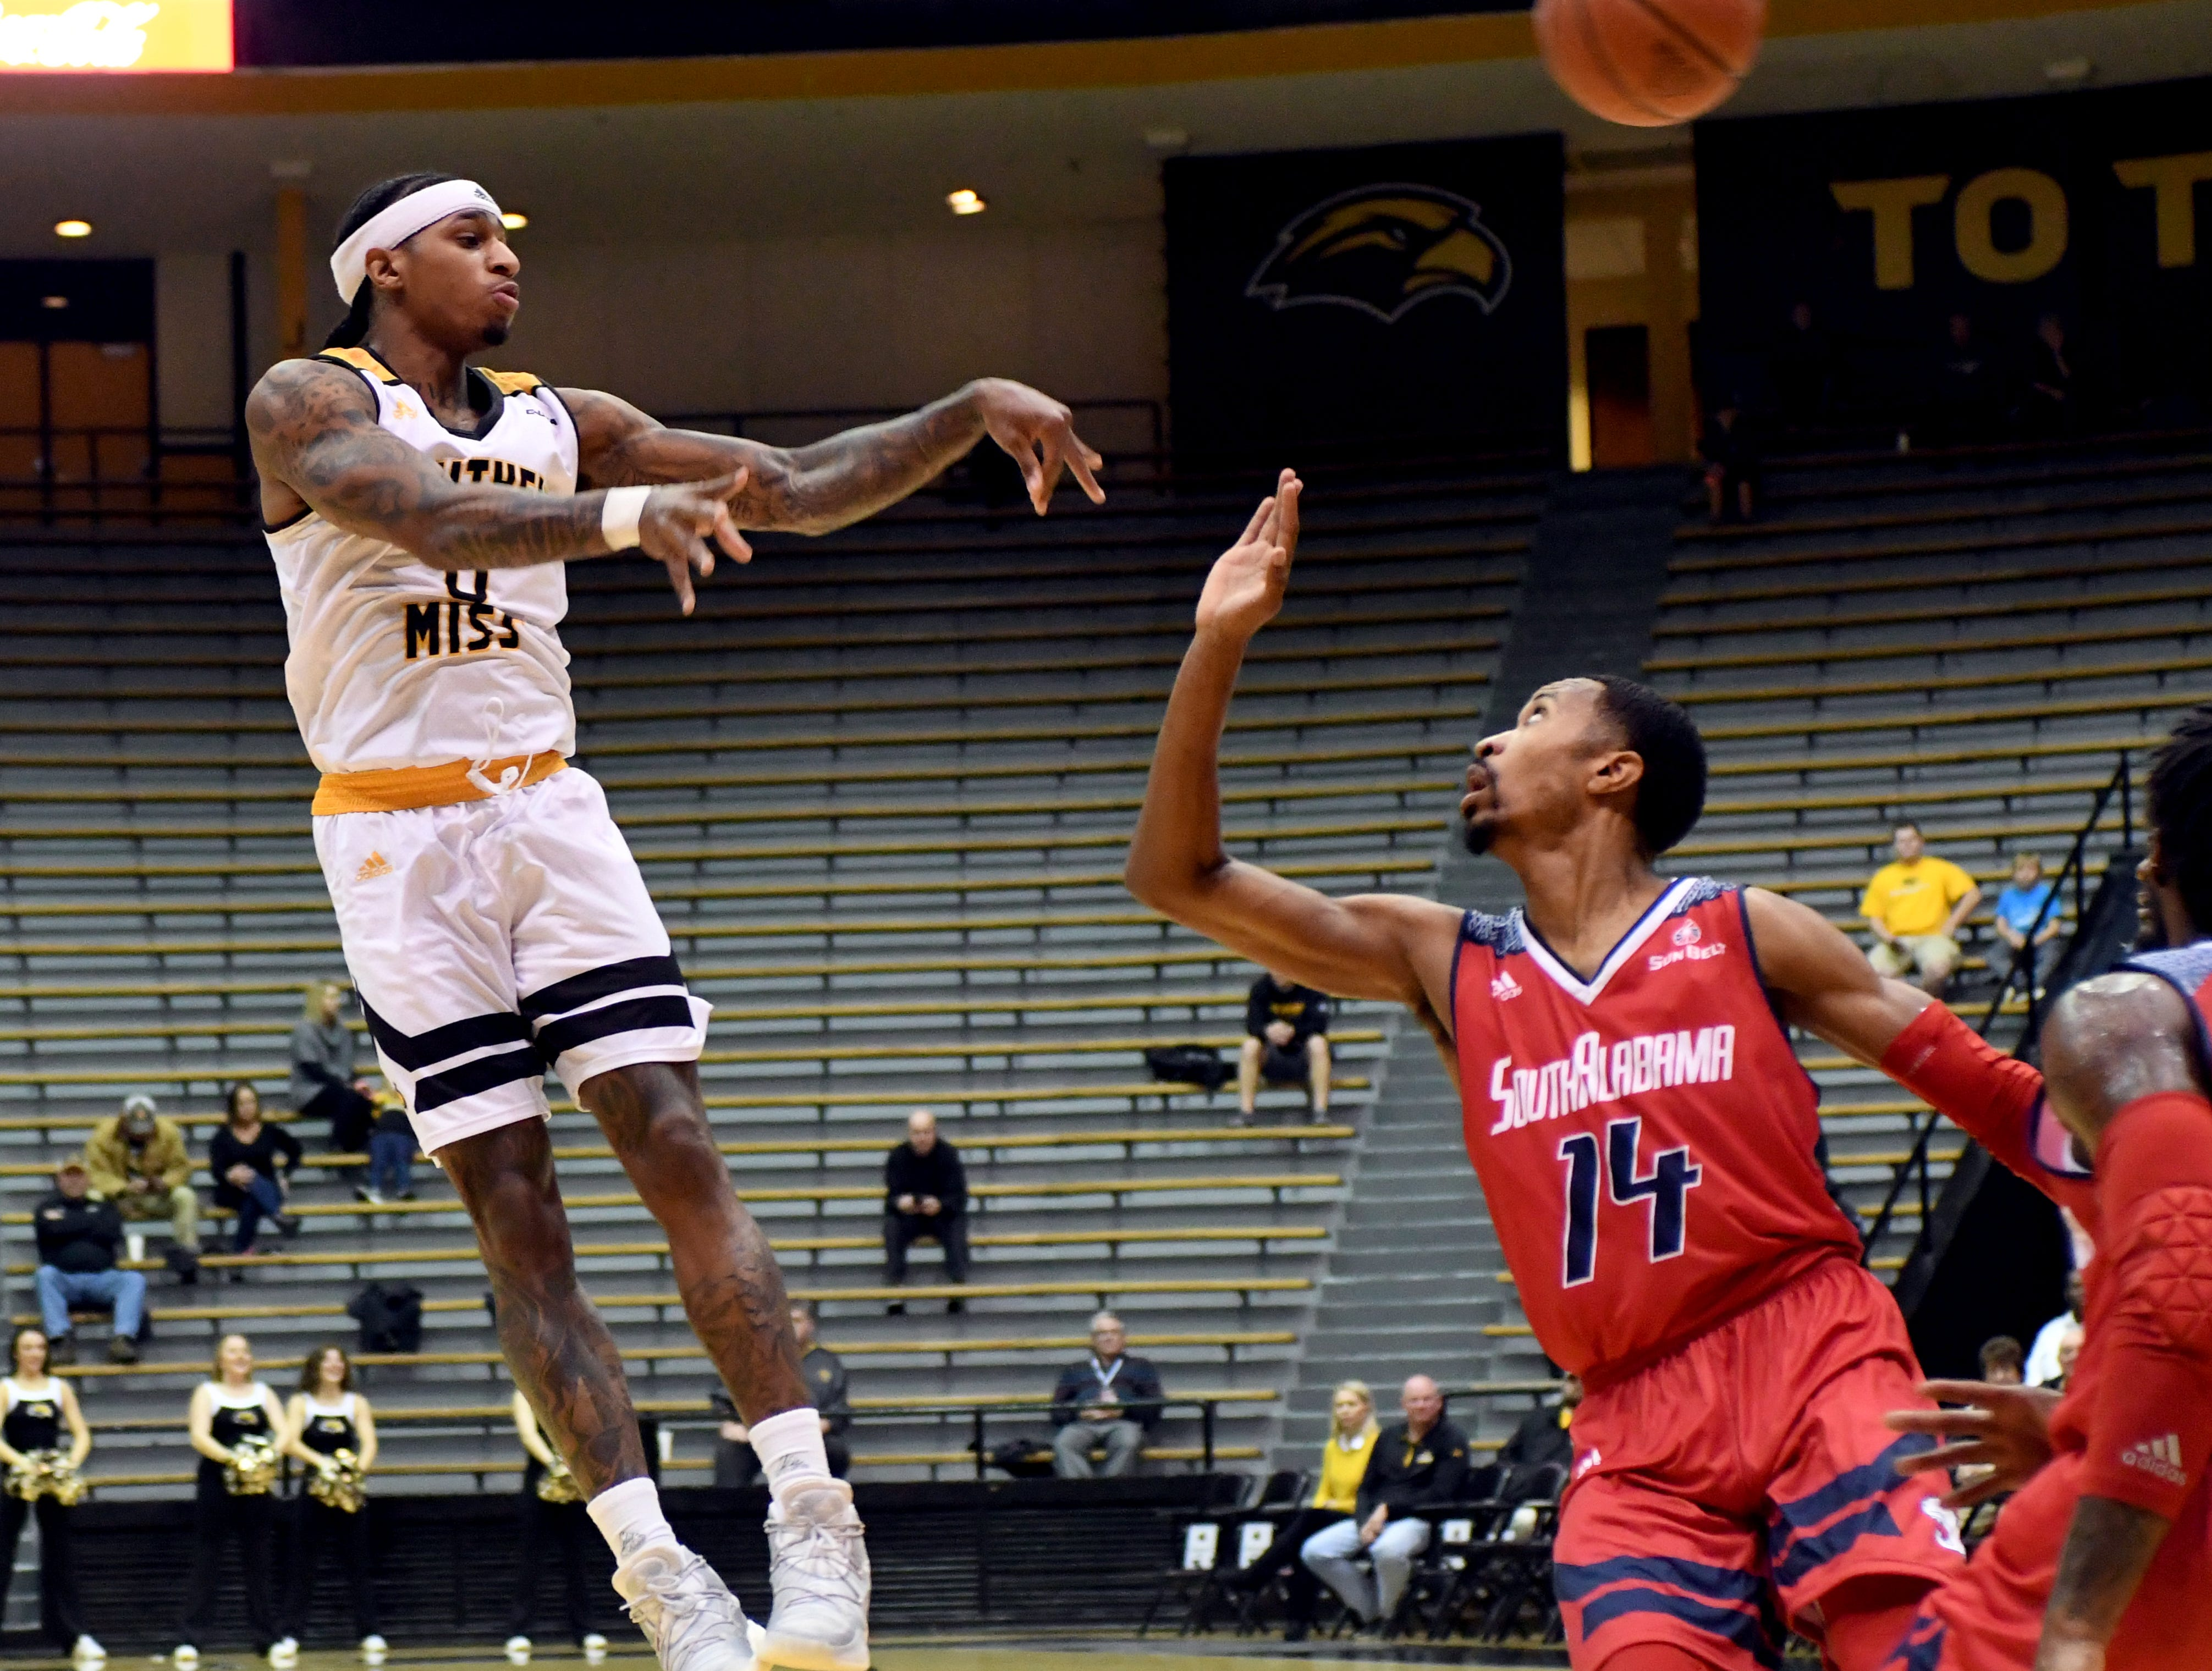 Southern Miss guard Dominic Magee passes the ball to his teammate in a game against South Alabama in Reed Green Coliseum on Wednesday, November 28, 2018.